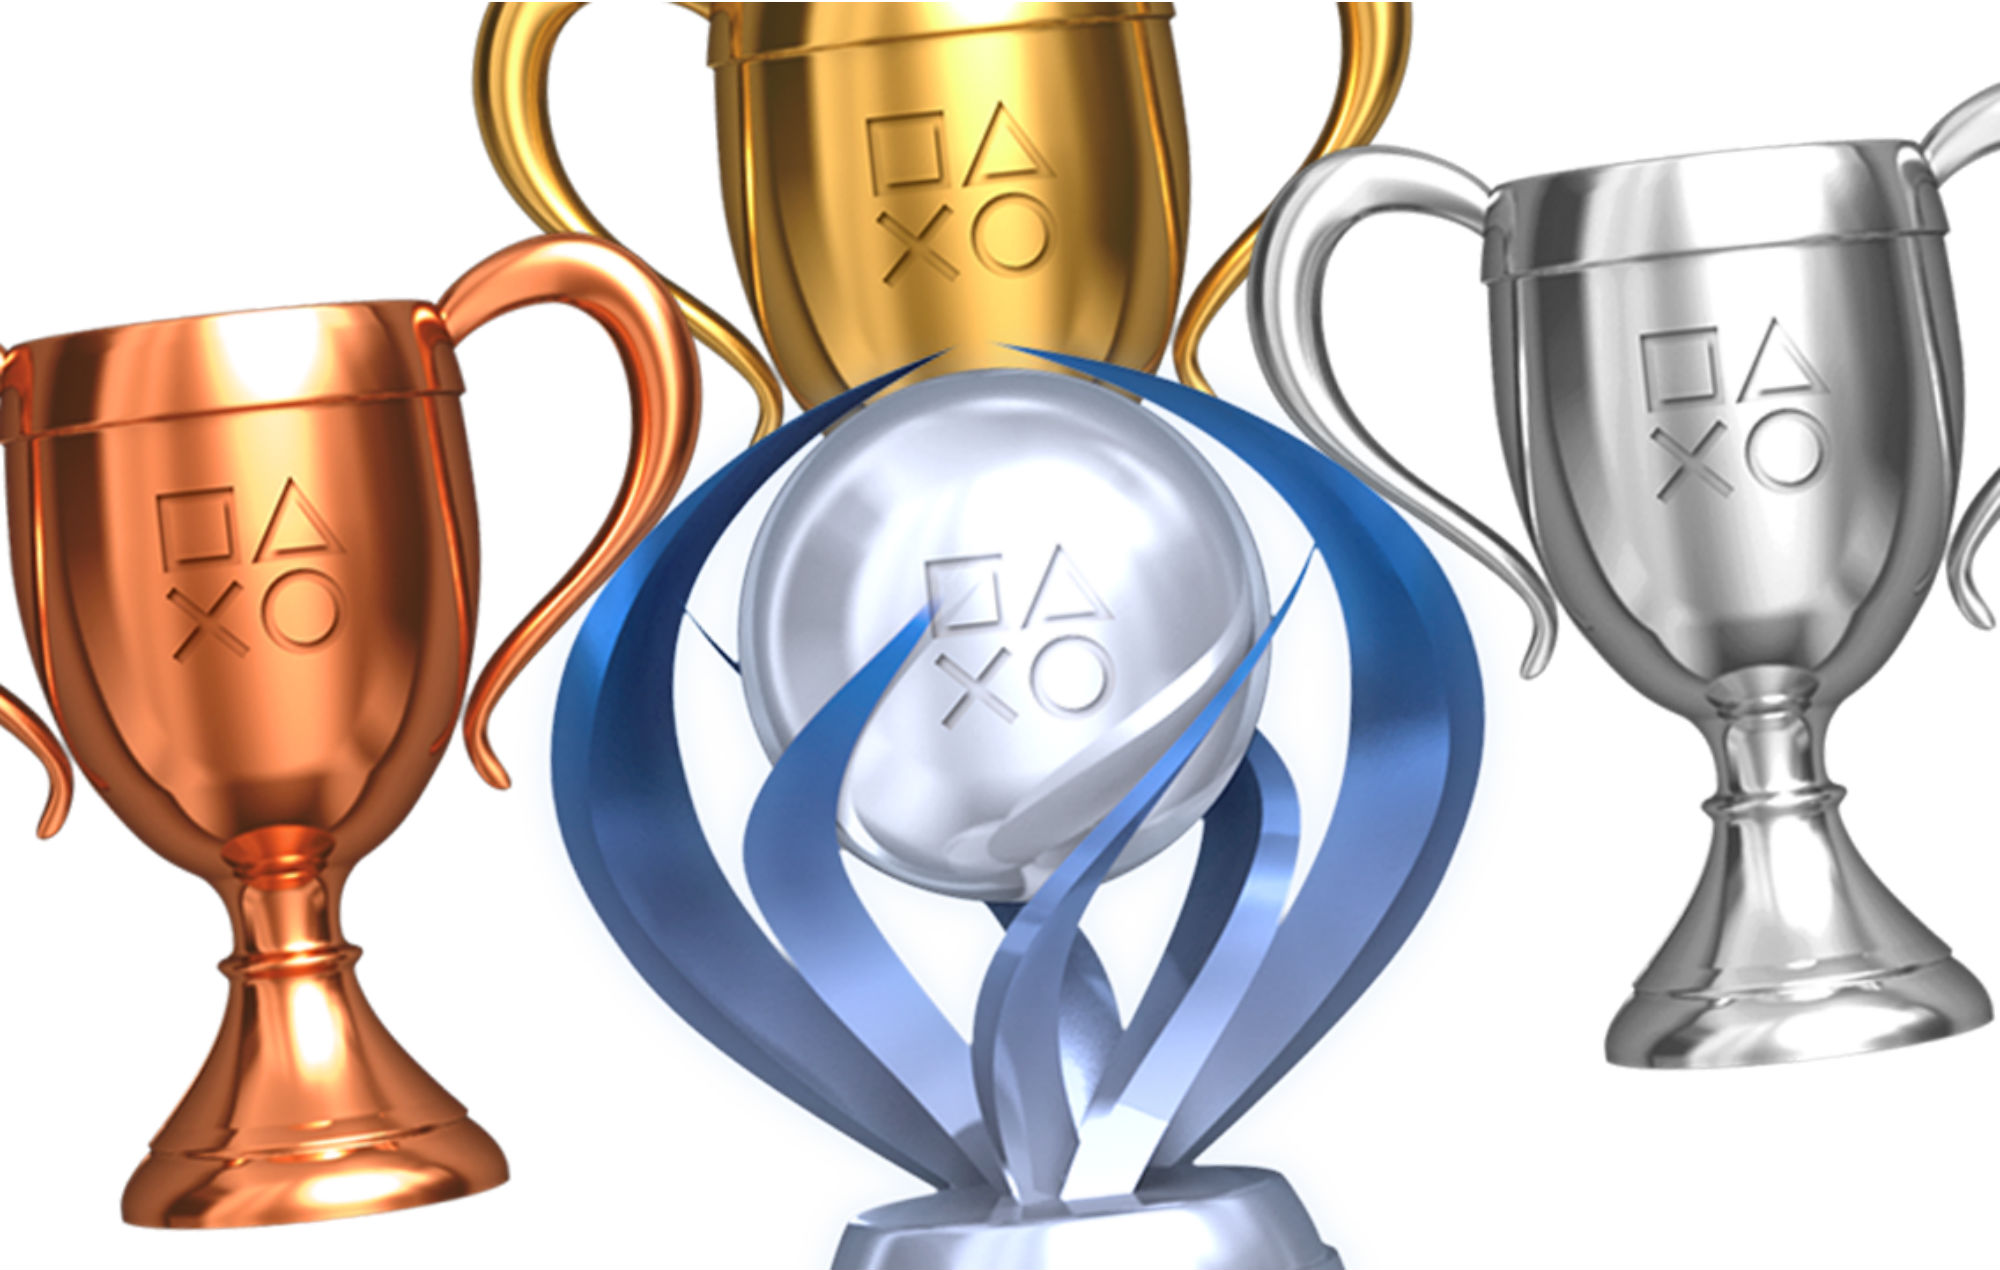 Awards Industry is Changing, Same Day Awards, order fast awards